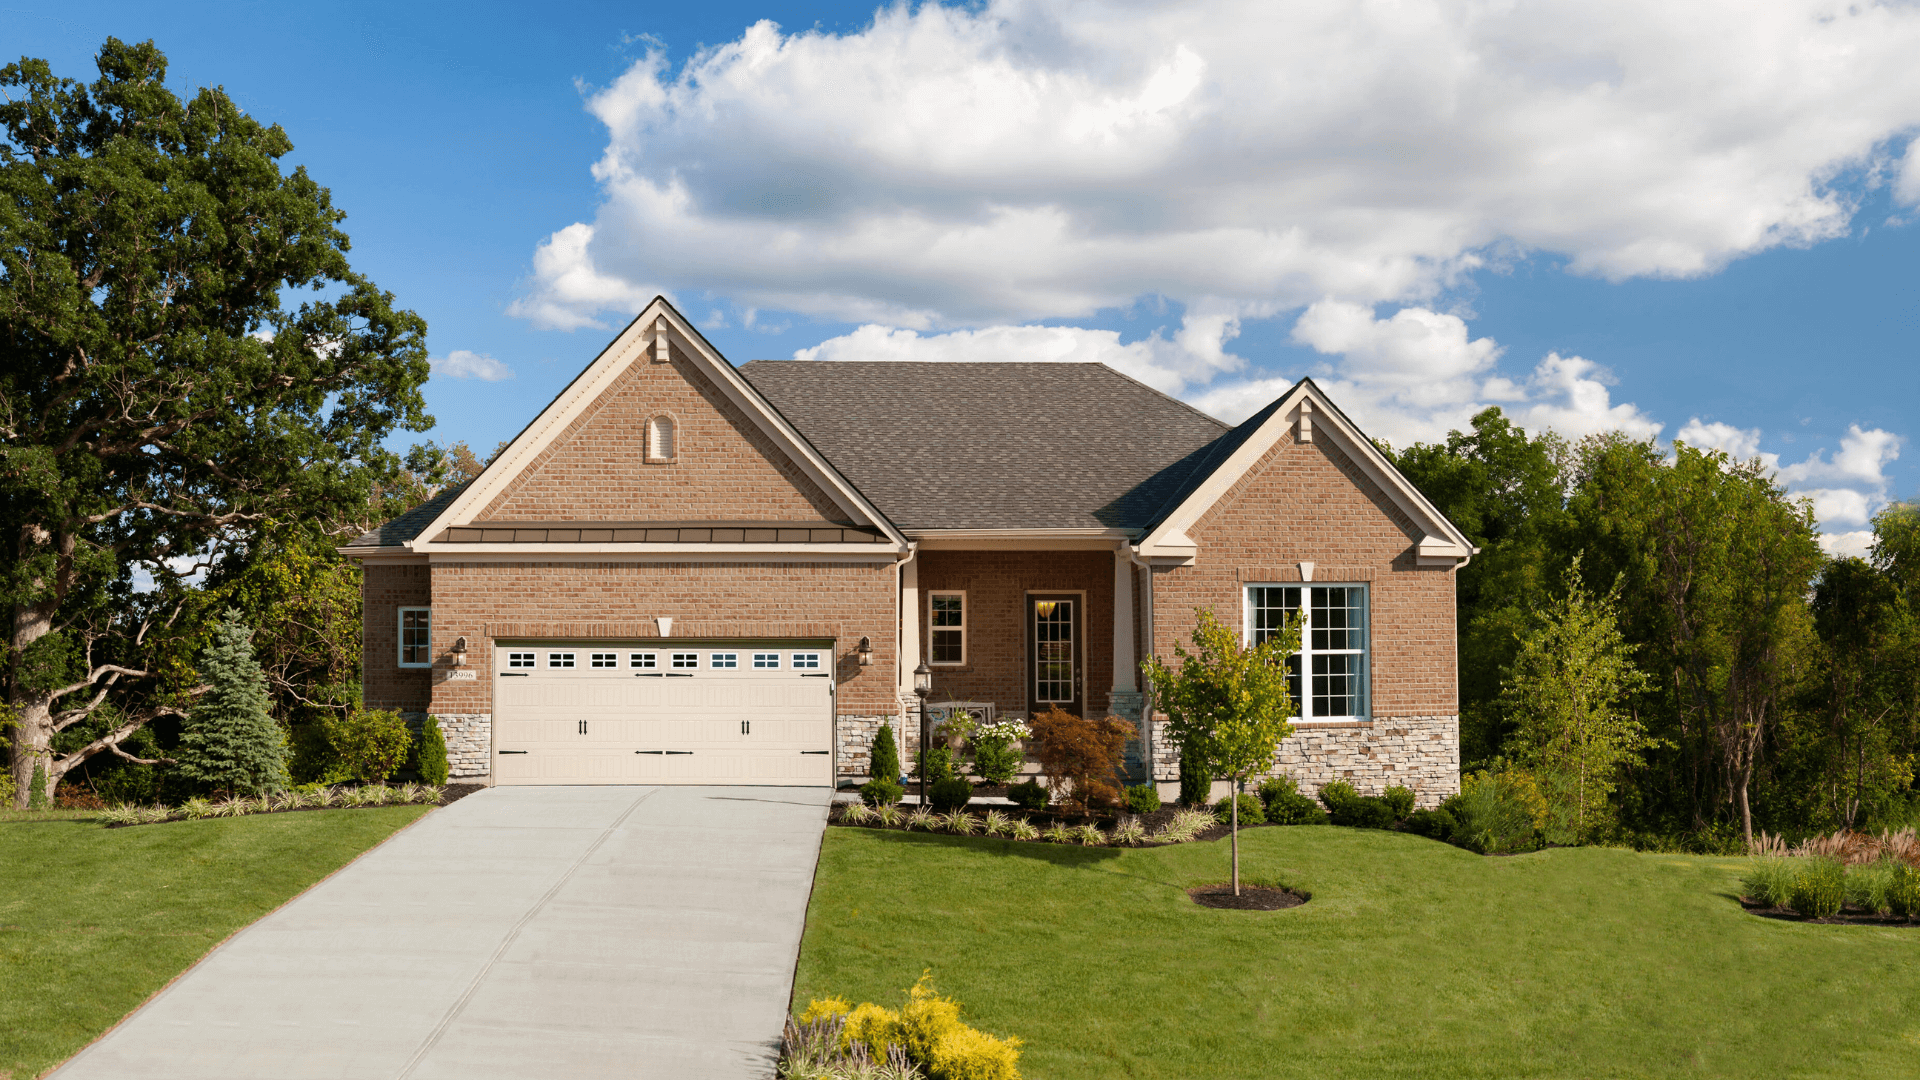 An exterior of a new home at Rivers Pointe Villas - Northern Kentucky Riverview community